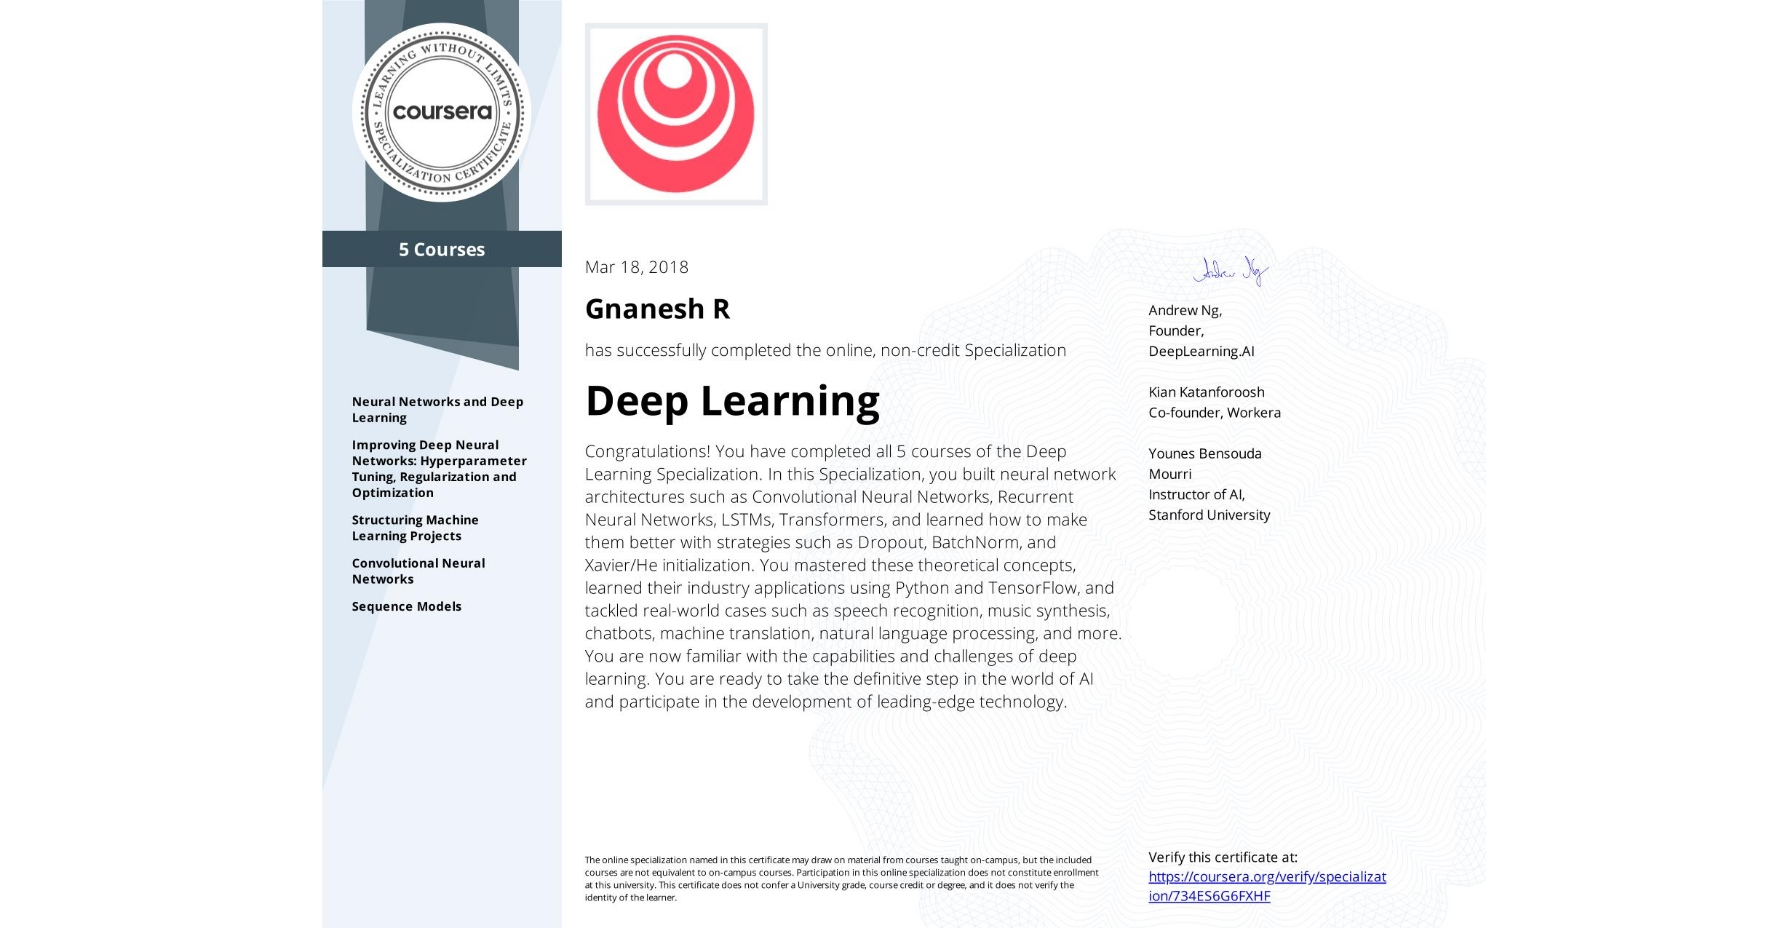 View certificate for Gnanesh R, Deep Learning, offered through Coursera. Congratulations! You have completed all 5 courses of the Deep Learning Specialization.  In this Specialization, you built neural network architectures such as Convolutional Neural Networks, Recurrent Neural Networks, LSTMs, Transformers, and learned how to make them better with strategies such as Dropout, BatchNorm, and Xavier/He initialization. You mastered these theoretical concepts, learned their industry applications using Python and TensorFlow, and tackled real-world cases such as speech recognition, music synthesis, chatbots, machine translation, natural language processing, and more.  You are now familiar with the capabilities and challenges of deep learning. You are ready to take the definitive step in the world of AI and participate in the development of leading-edge technology.